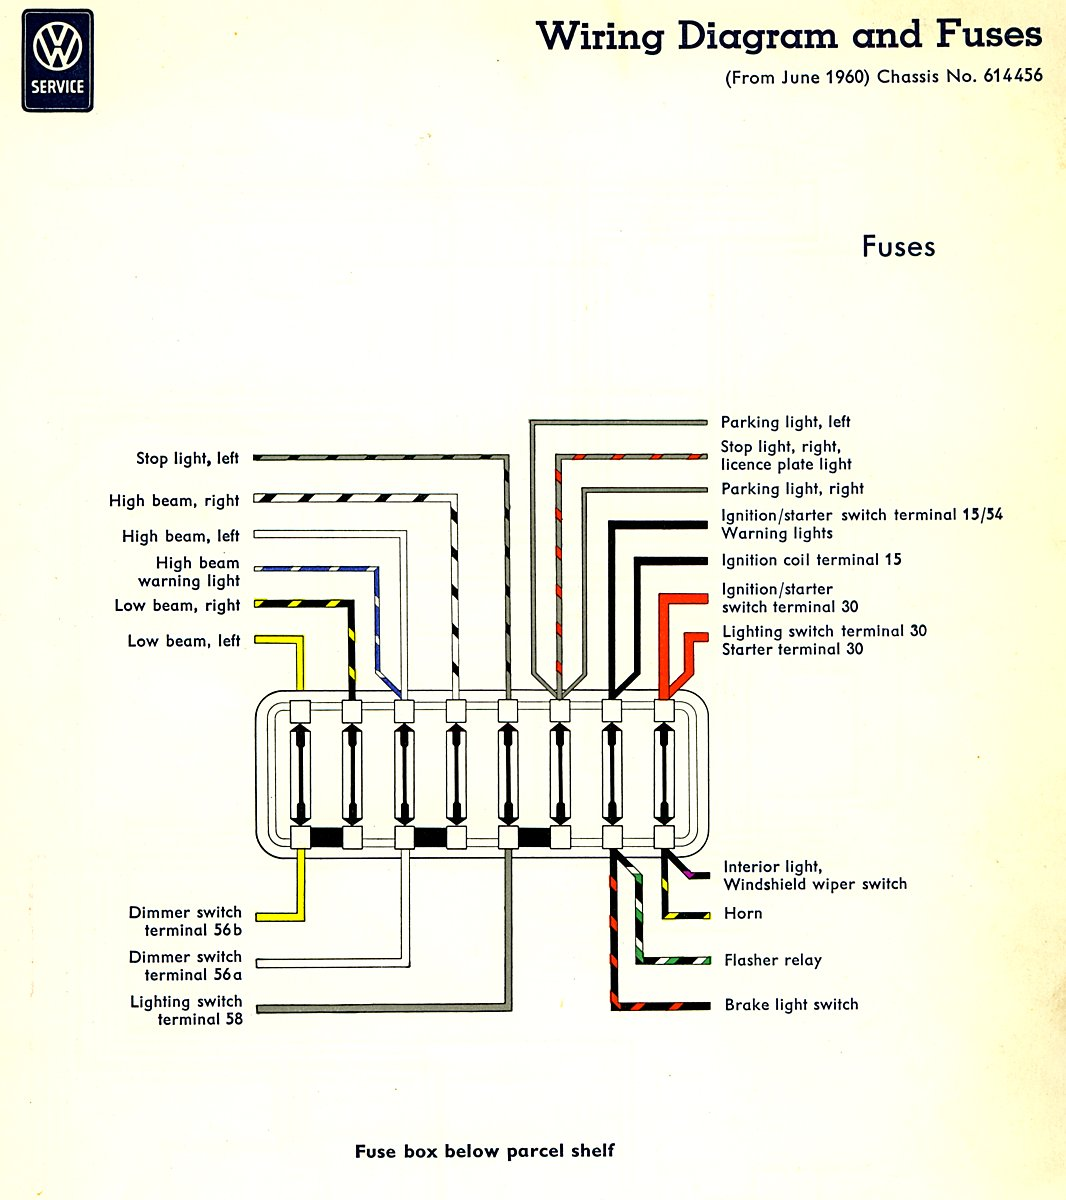 hight resolution of 1976 vw fuse diagram schema wiring diagram online 97 vw jetta fuse box diagram 1976 vw fuse diagram